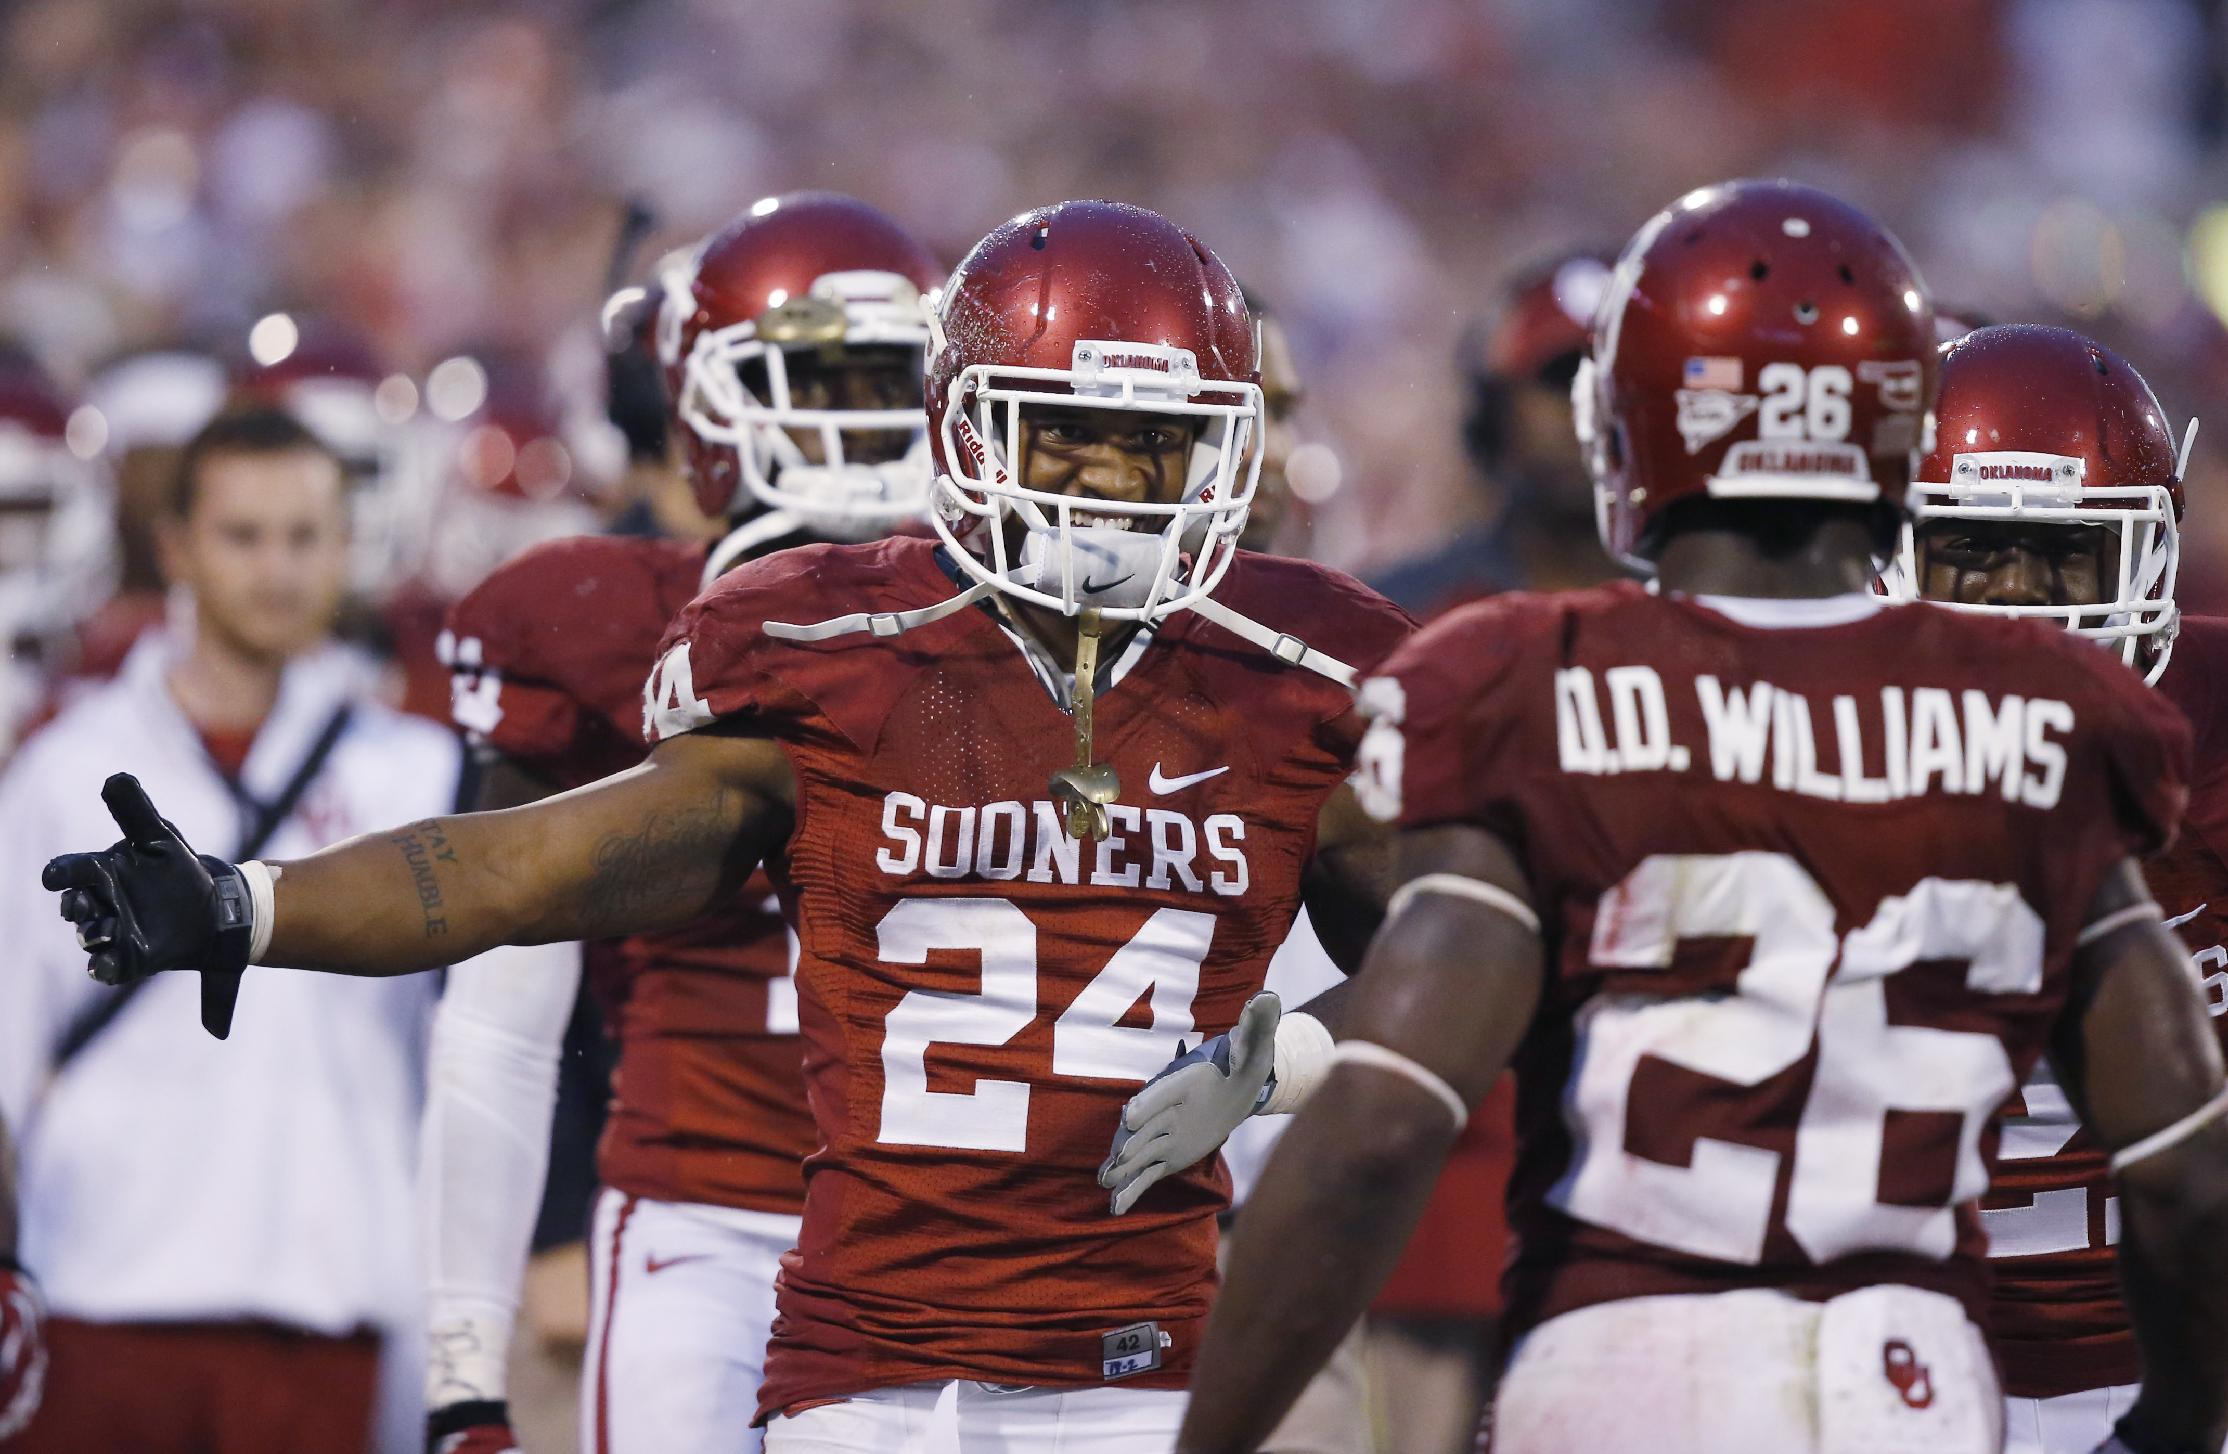 Oklahoma running back Brennan Clay (24) greets teammate Damien Williams (26) on the sidelines after Williams scored a touchdown against Texas Tech in the fourth quarter of an NCAA college football game in Norman, Okla., Saturday, Oct. 26, 2013. Oklahoma won 38-30